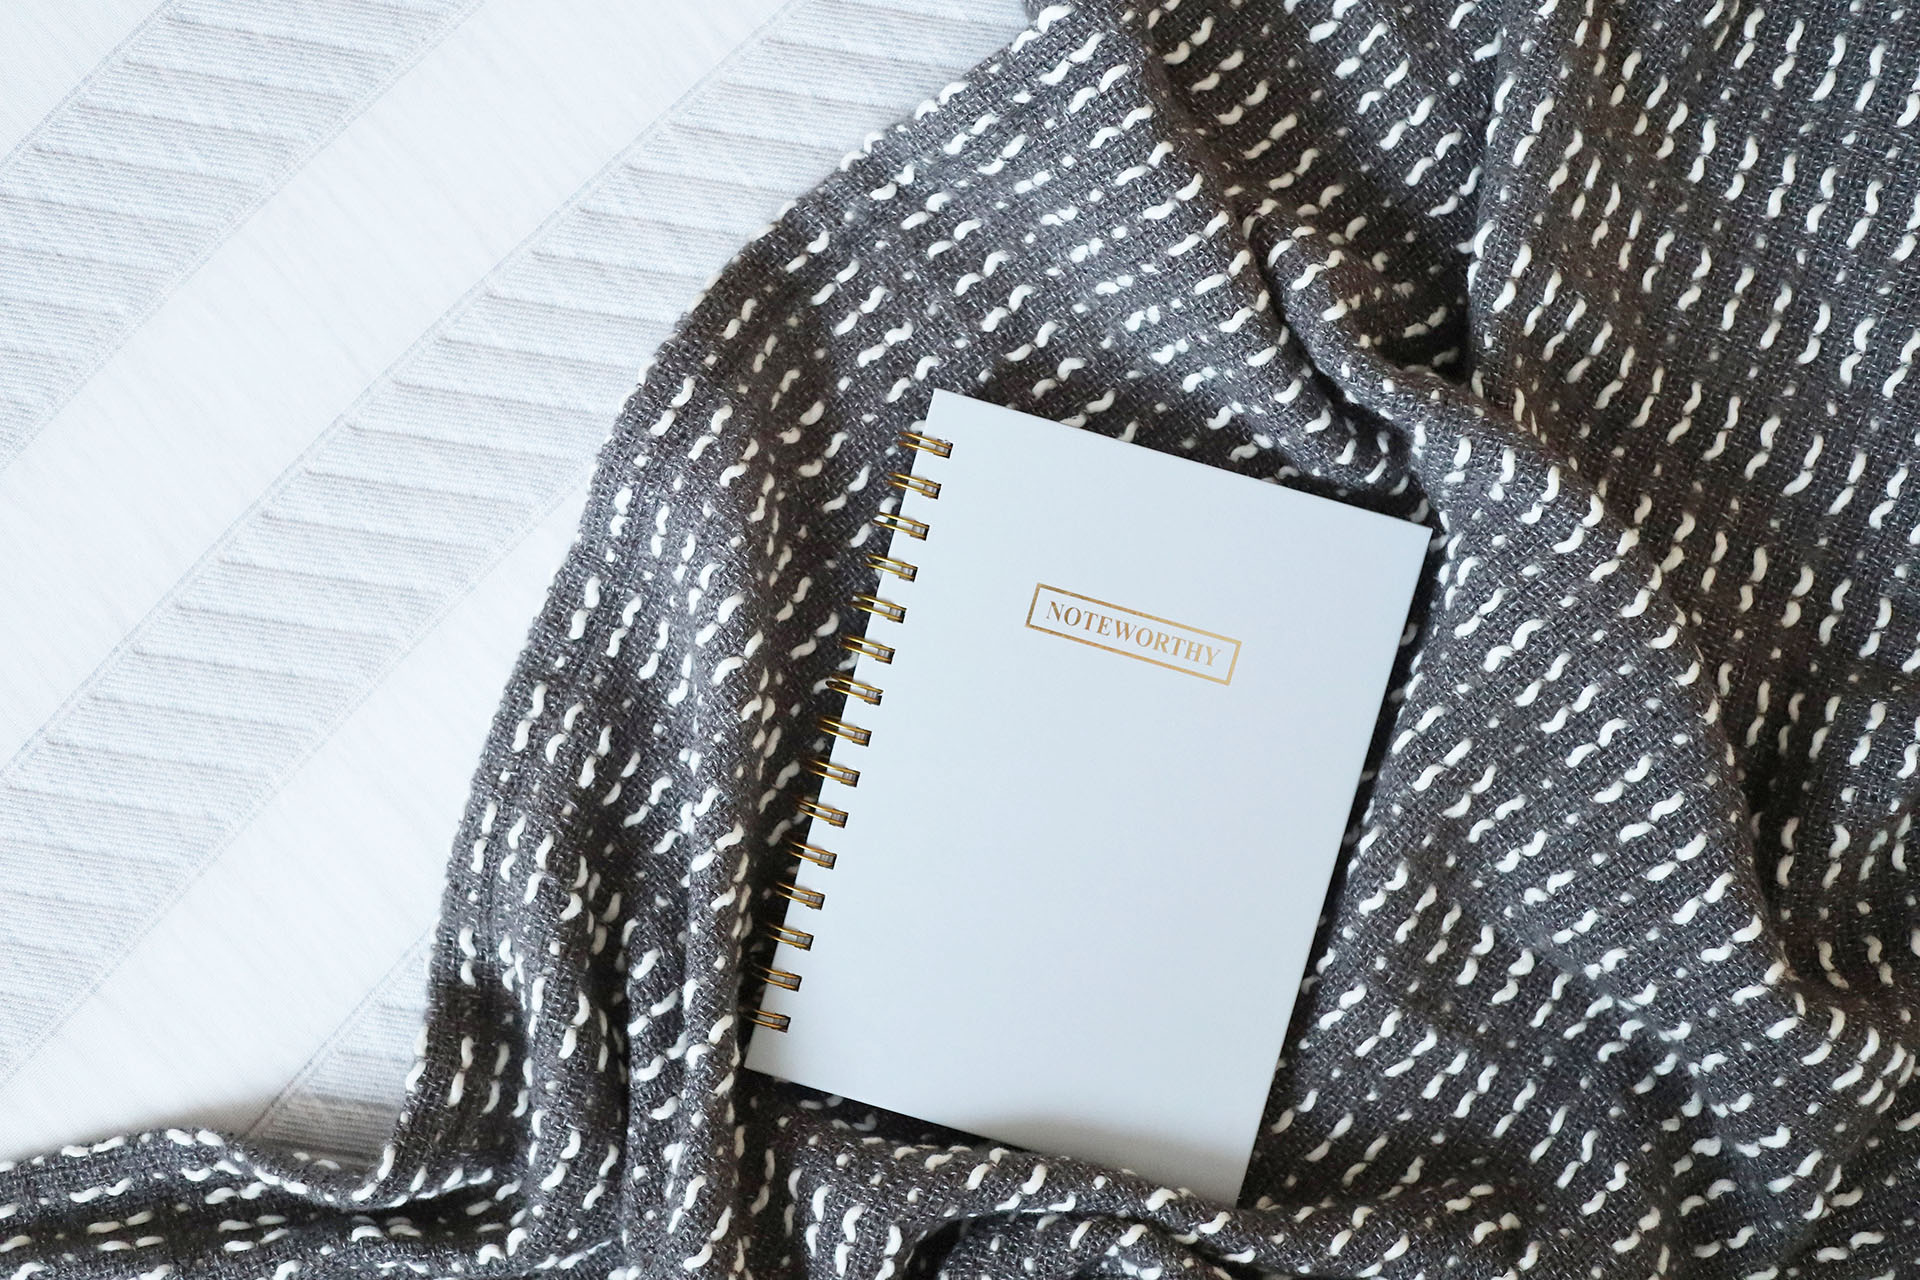 A notebook and throw placed on top of the Leesa mattress, with the Leesa stripes visible